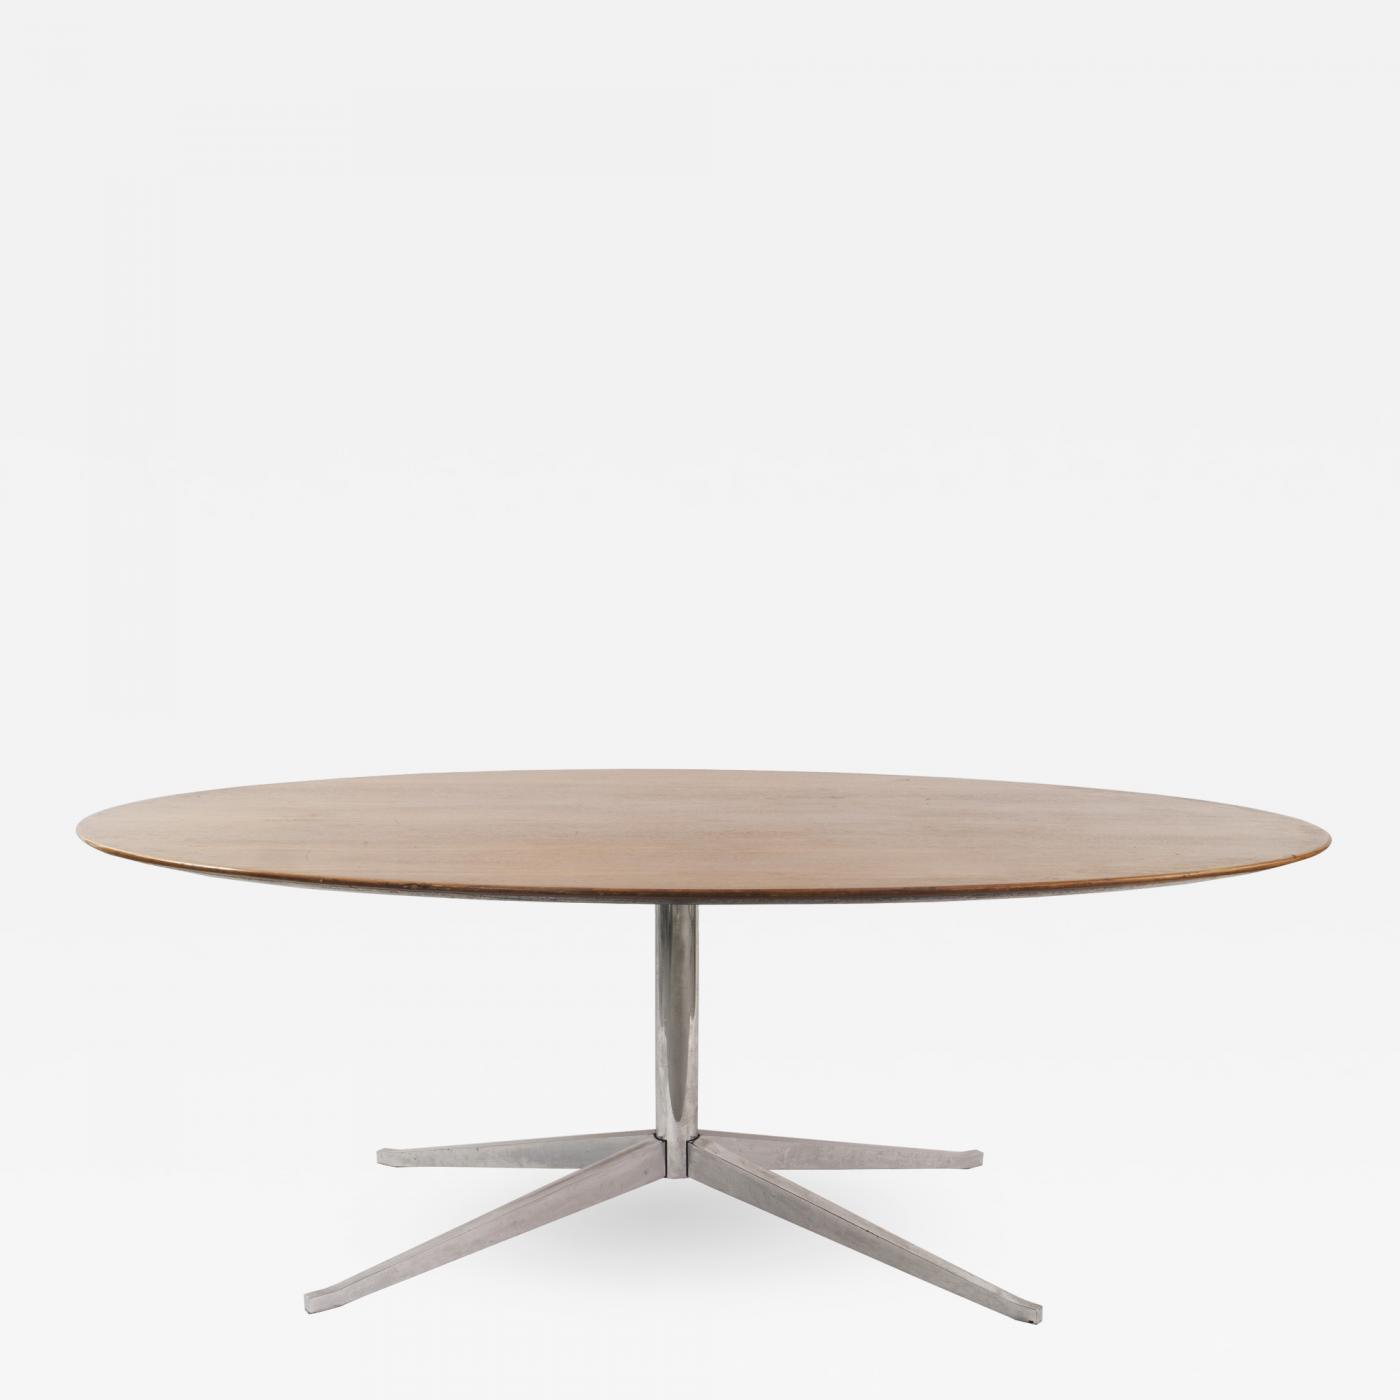 Knoll Table Florence Knoll Mid Century American Teak Oval Dining Table